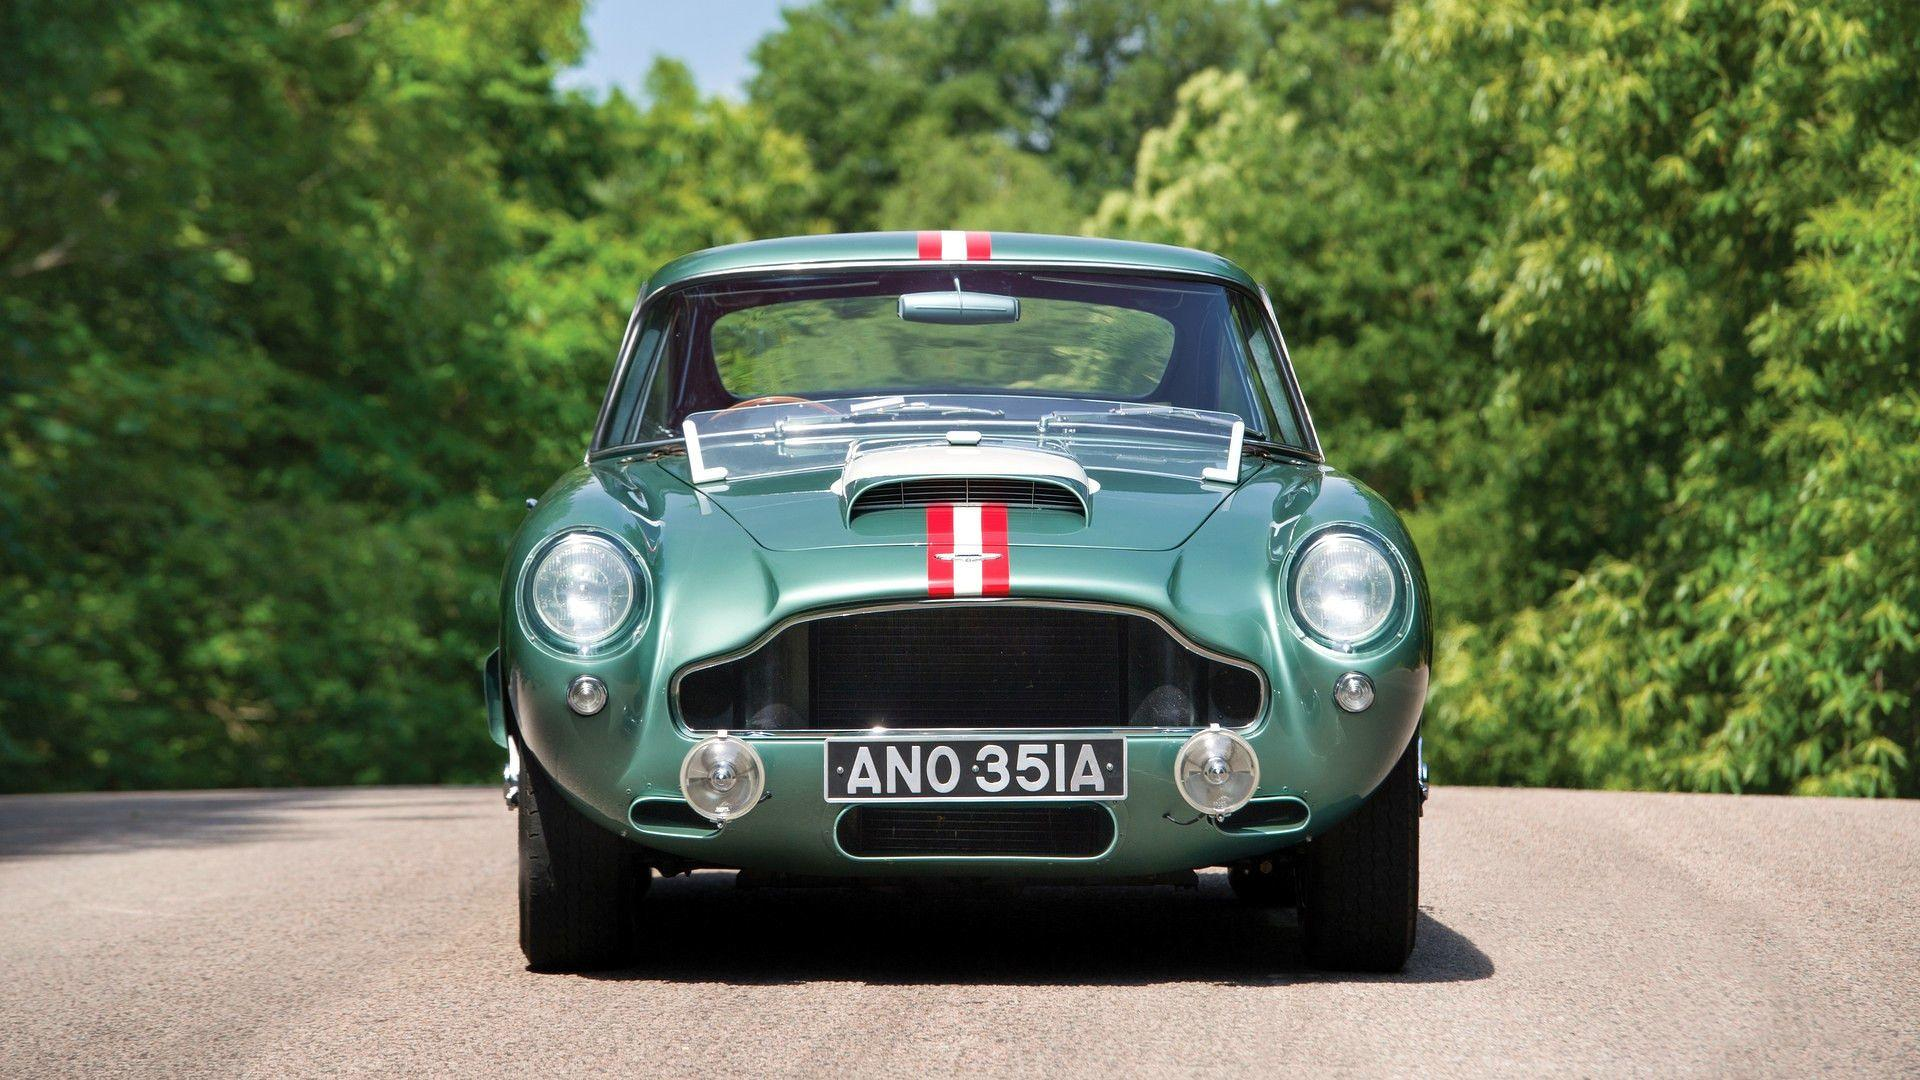 1959-aston-martin-db4gt-copyright-tim-scott-rm-sothebys (1)